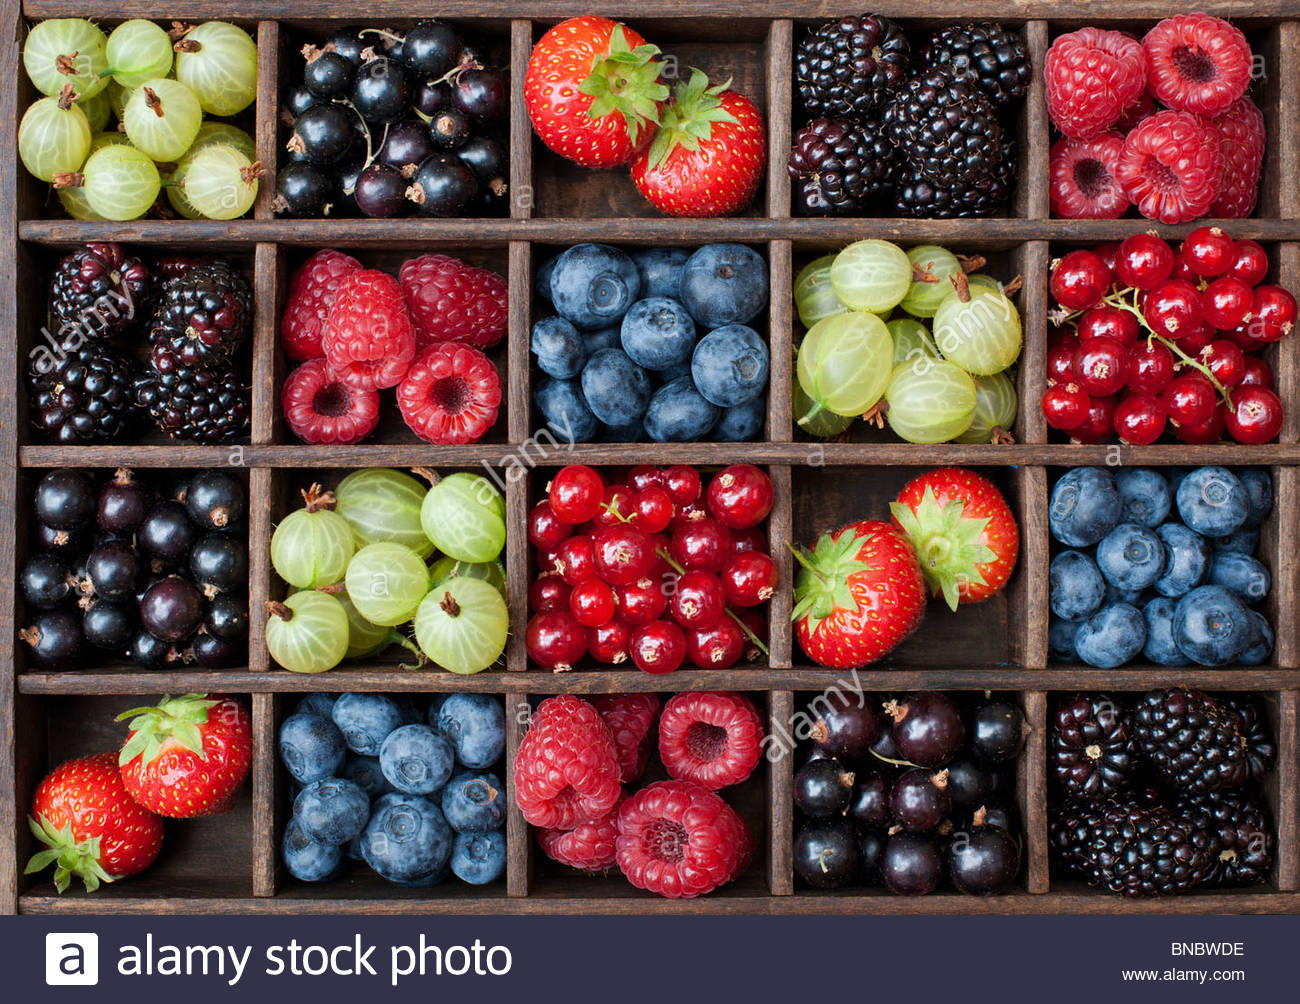 English summer berries and fruit in a wooden grid pattern. Flat lay photography from above - Stock Image